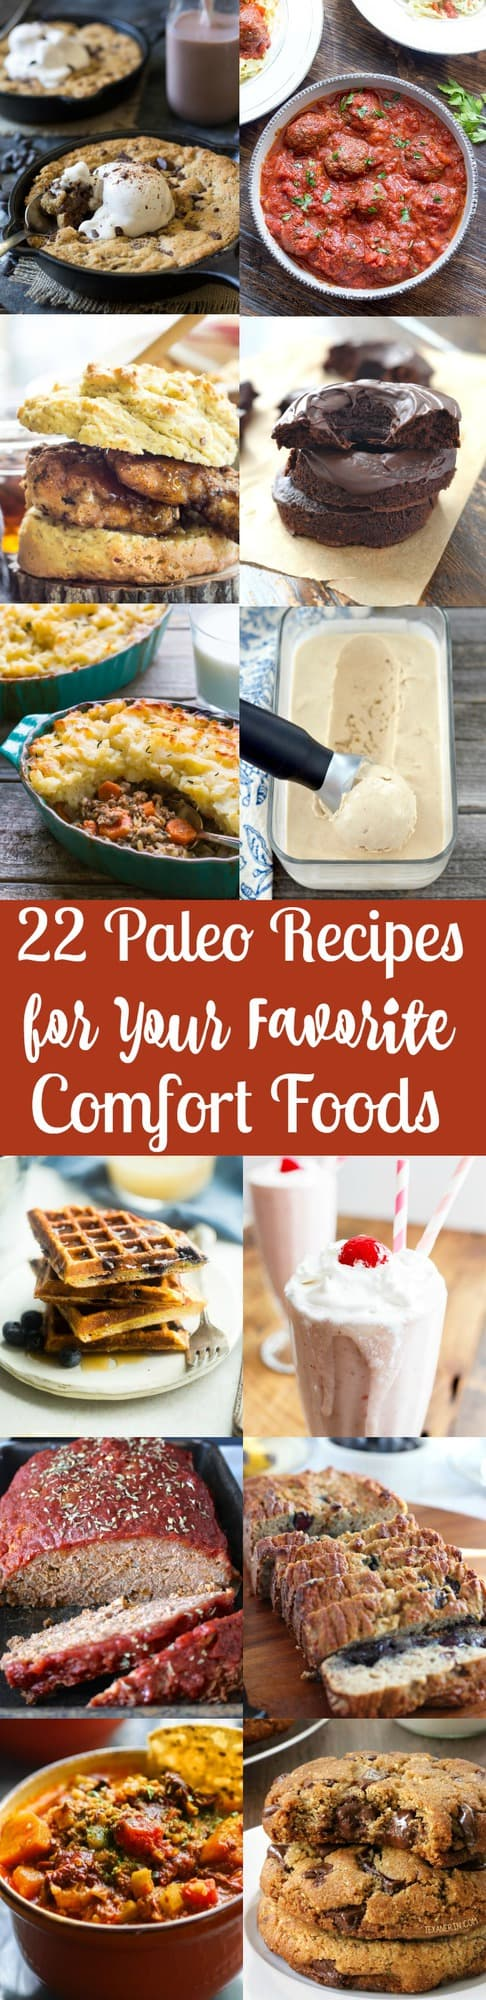 A roundup of 22 delicious Paleo recipes for your favorite classic comfort foods! Savory and sweet Paleo recipes included - this is not one to miss! All recipes are Paleo and many Whole30 friendly